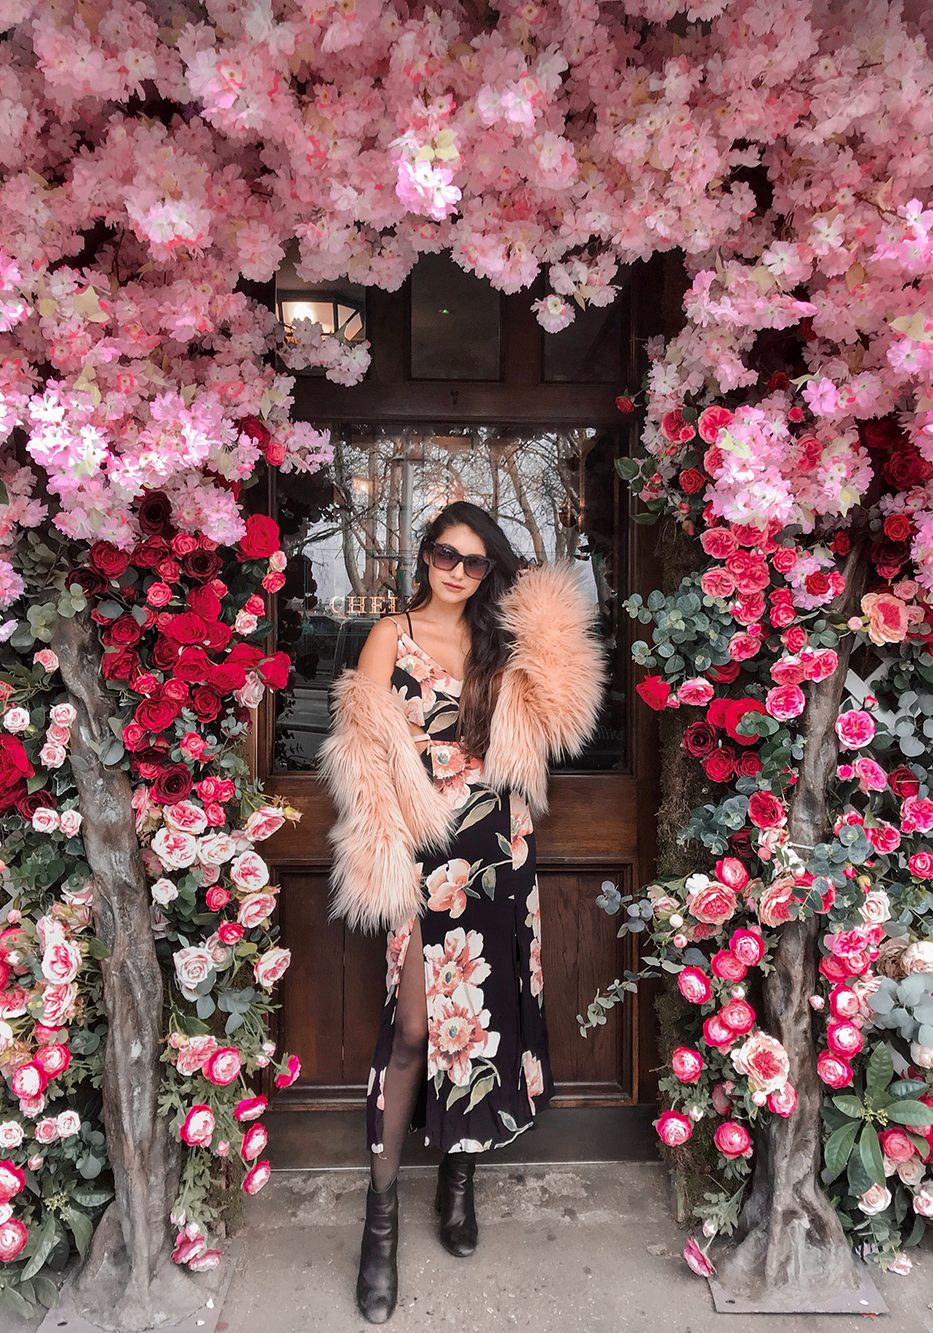 Anoushka-Probyn-UK-London-Fashion-Blogger-Chelsea-Kings-Road-Guide-The-Ivy-Garden-Instagram-Locations-Pastel-London-portrait.jpeg